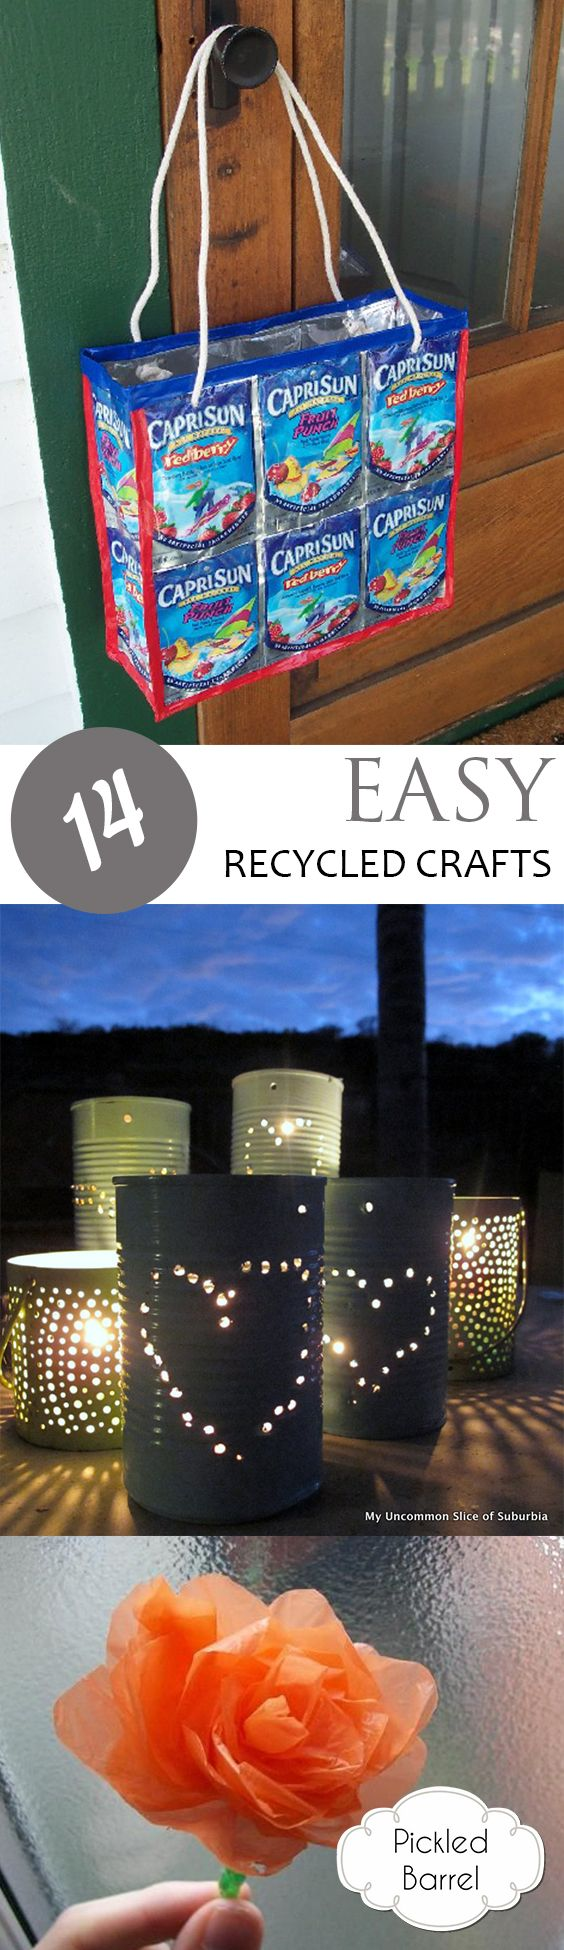 14 Easy Recycled Crafts - Easy recycled crafts, Recycling for kids, Recycled crafts, Recycled crafts kids, Recycling projects for kids, Recycled art projects - Recycled craft projects for the home